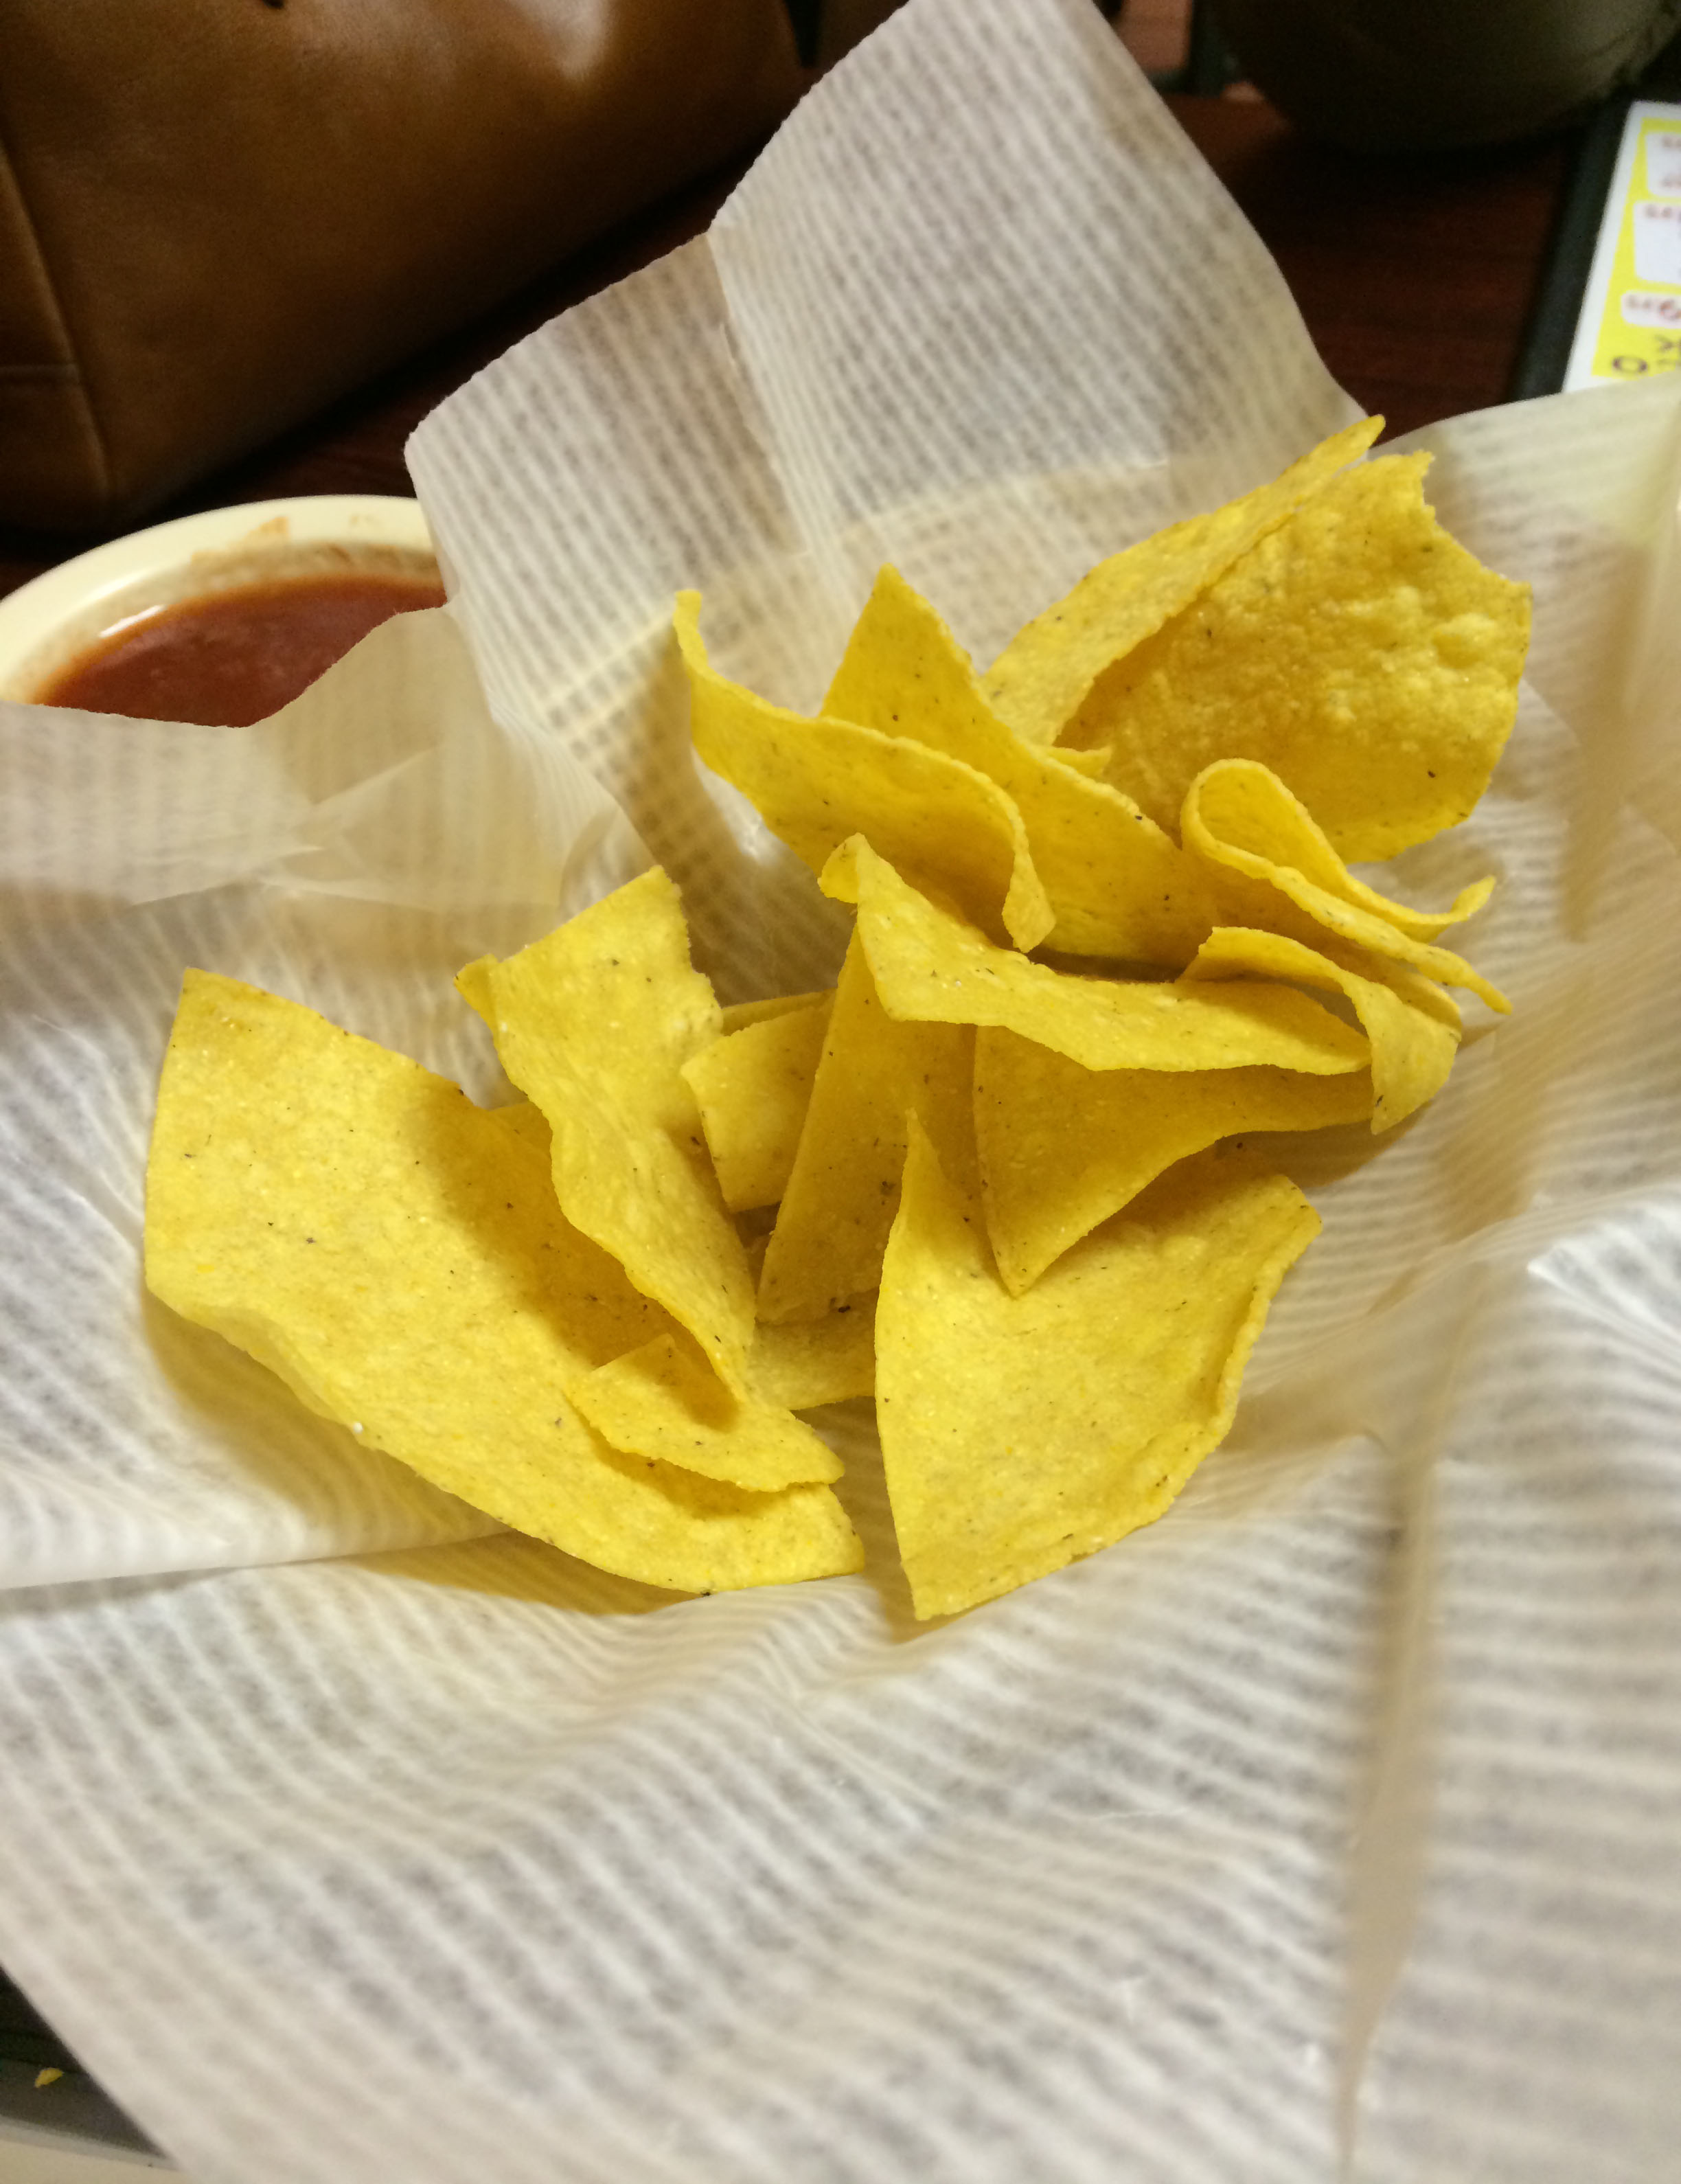 This was our chip basket when she brought it out. She never asked to re-fill it.